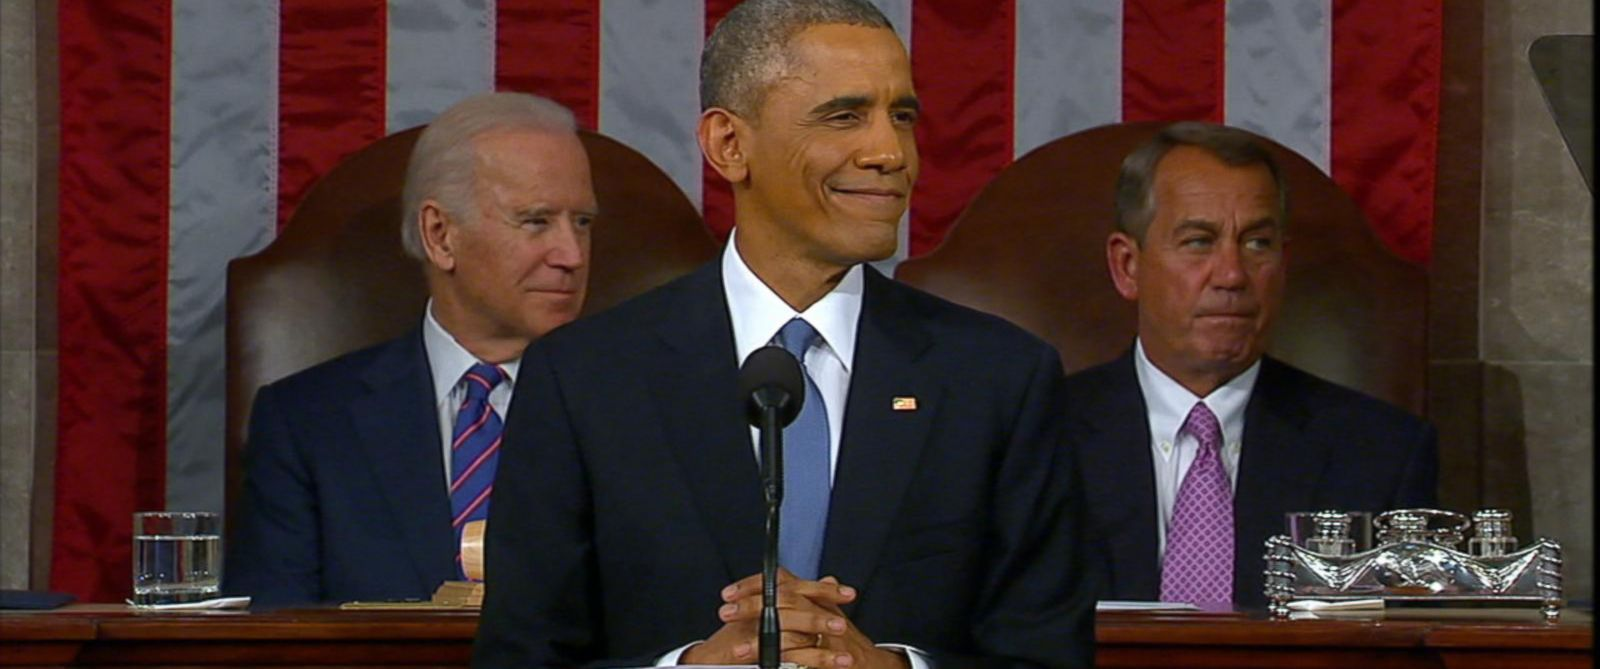 PHOTO: President Obama addresses the House chamber while giving the State of the Union, Jan. 20, 2015 in Washington.